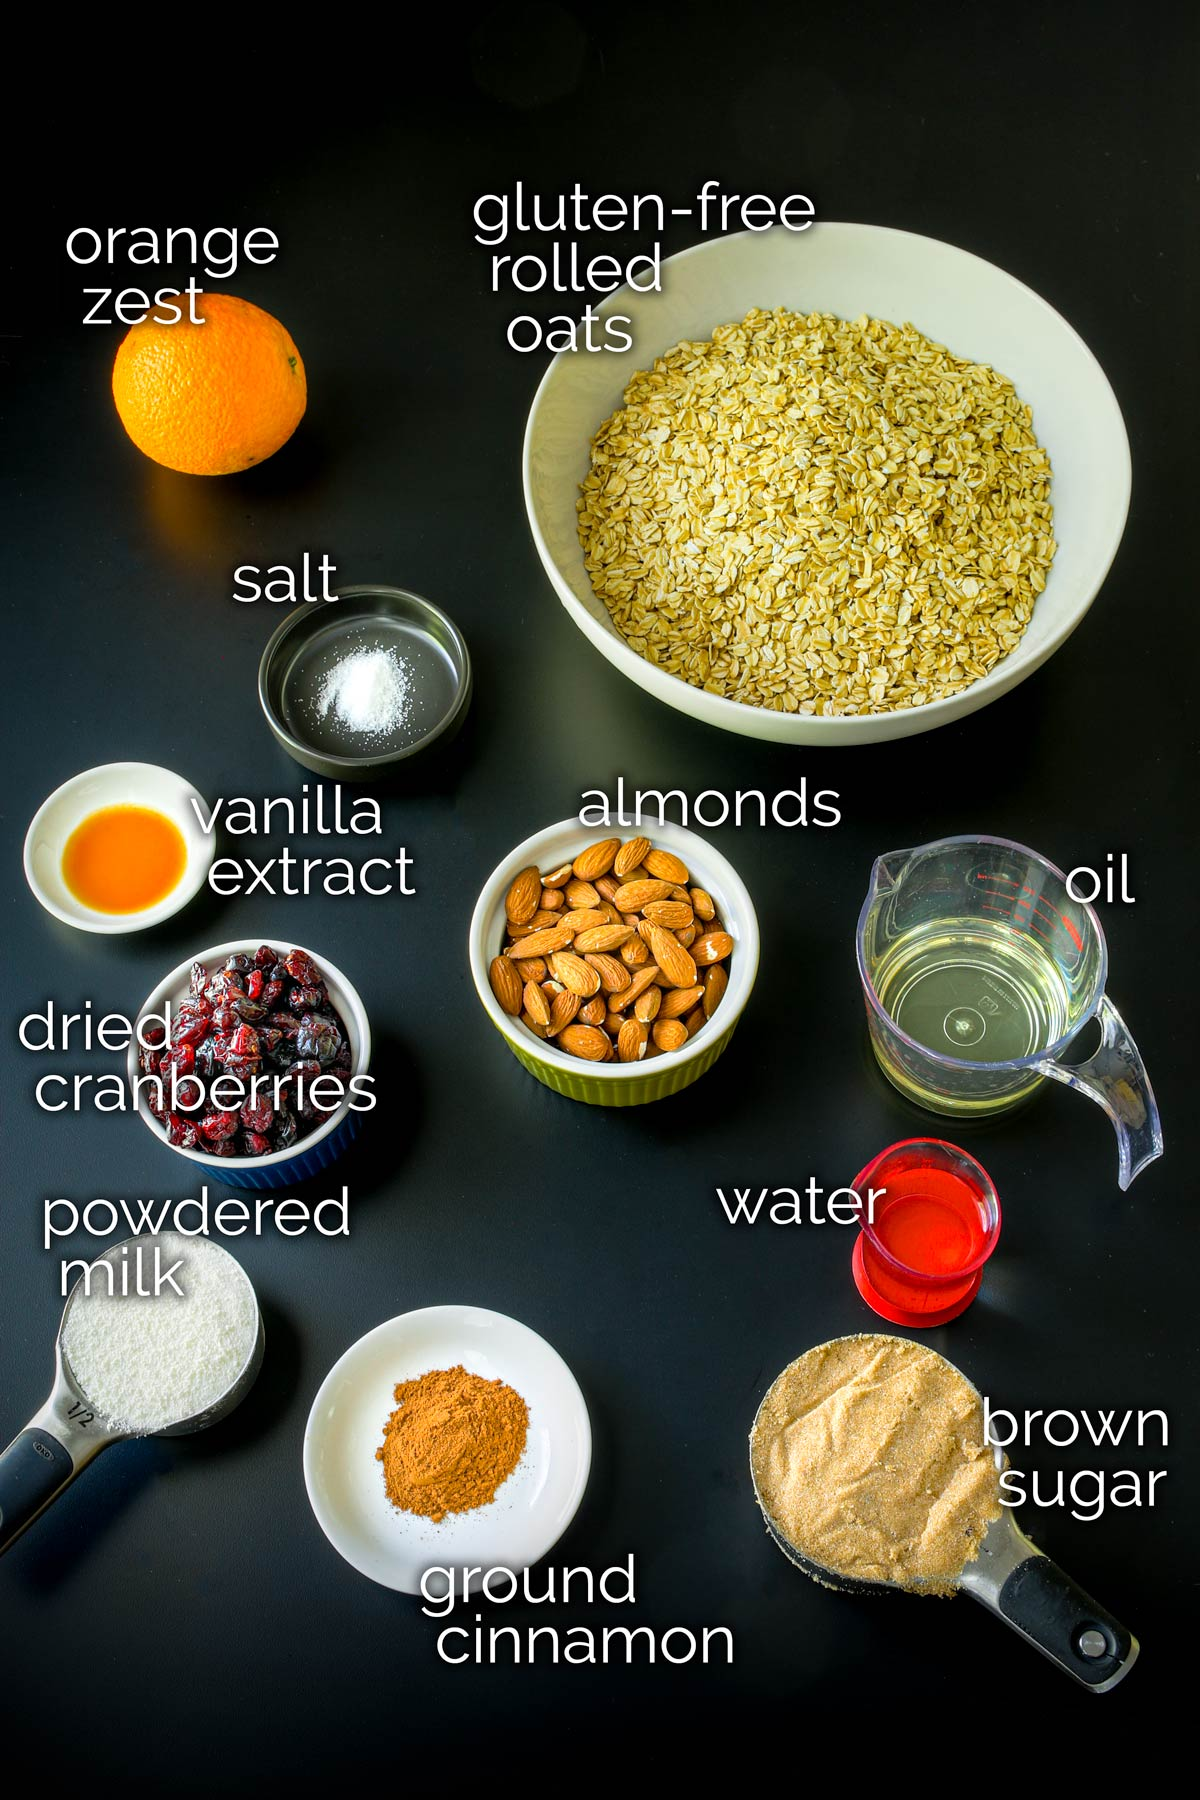 ingredients for gluten-free granola laid out on a table.